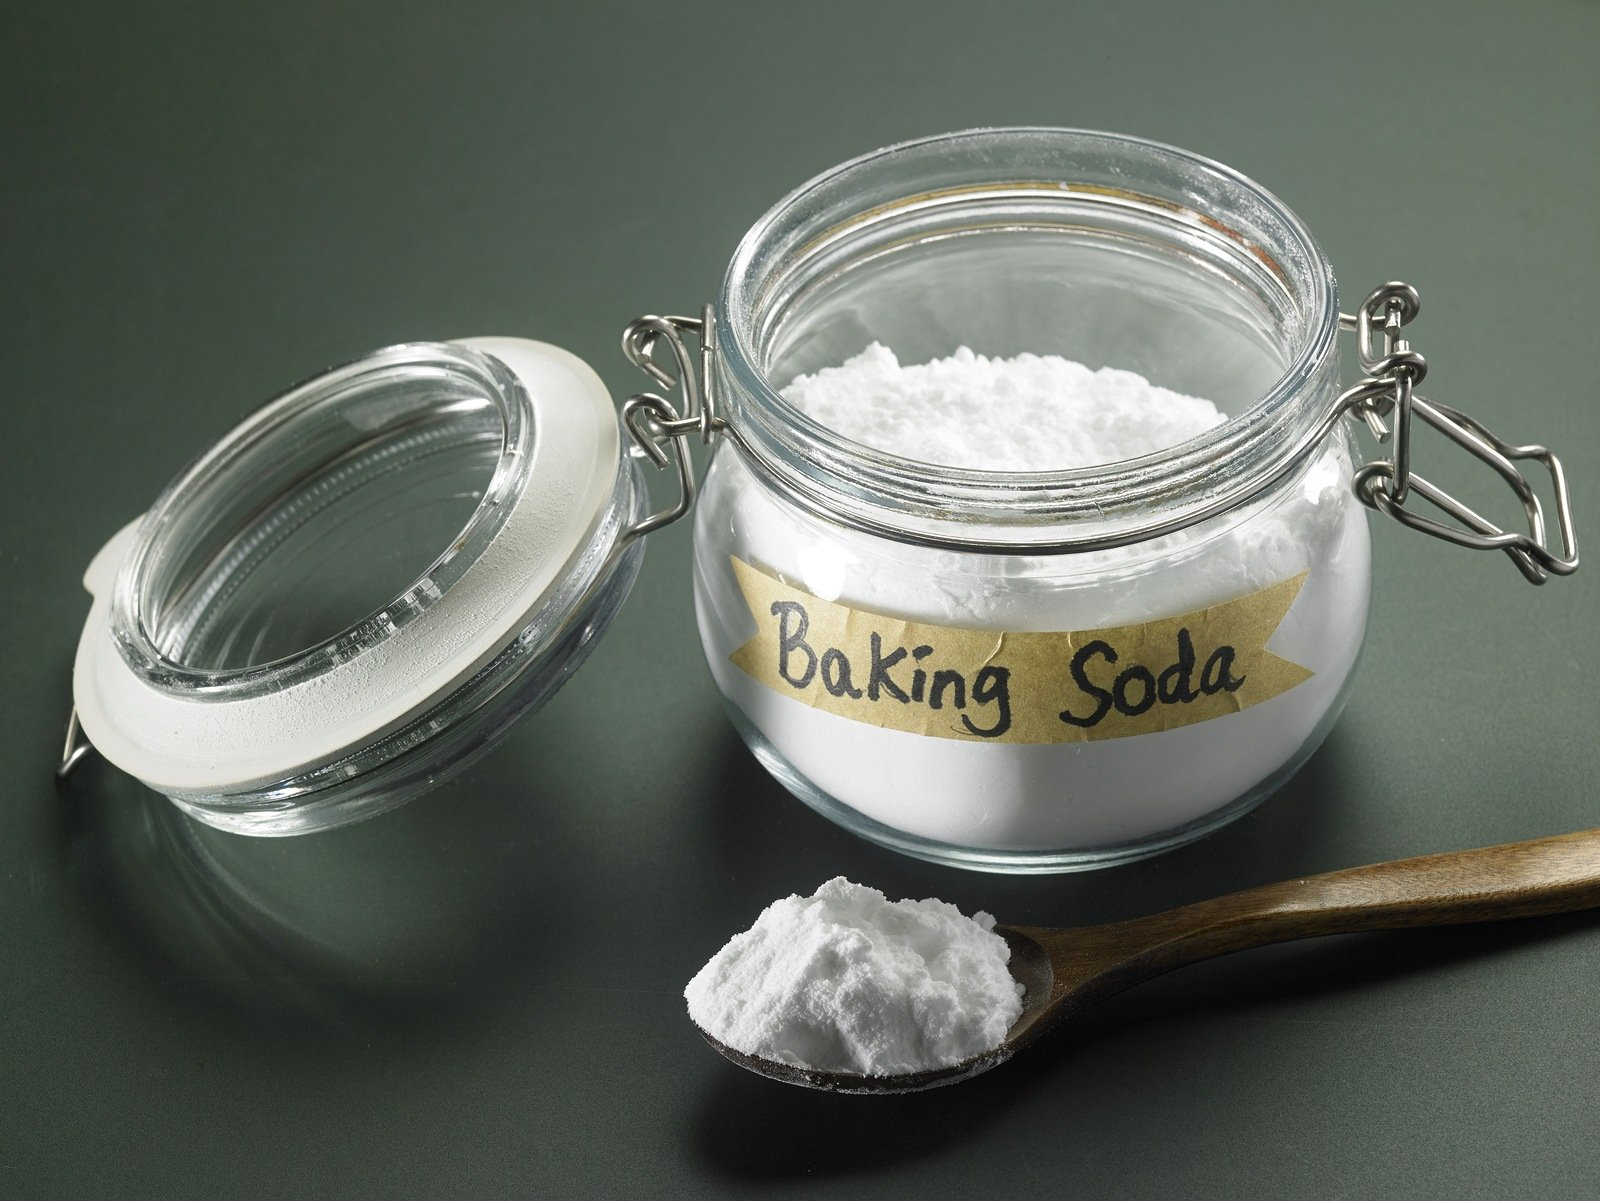 Baking soda test for low stomach acid